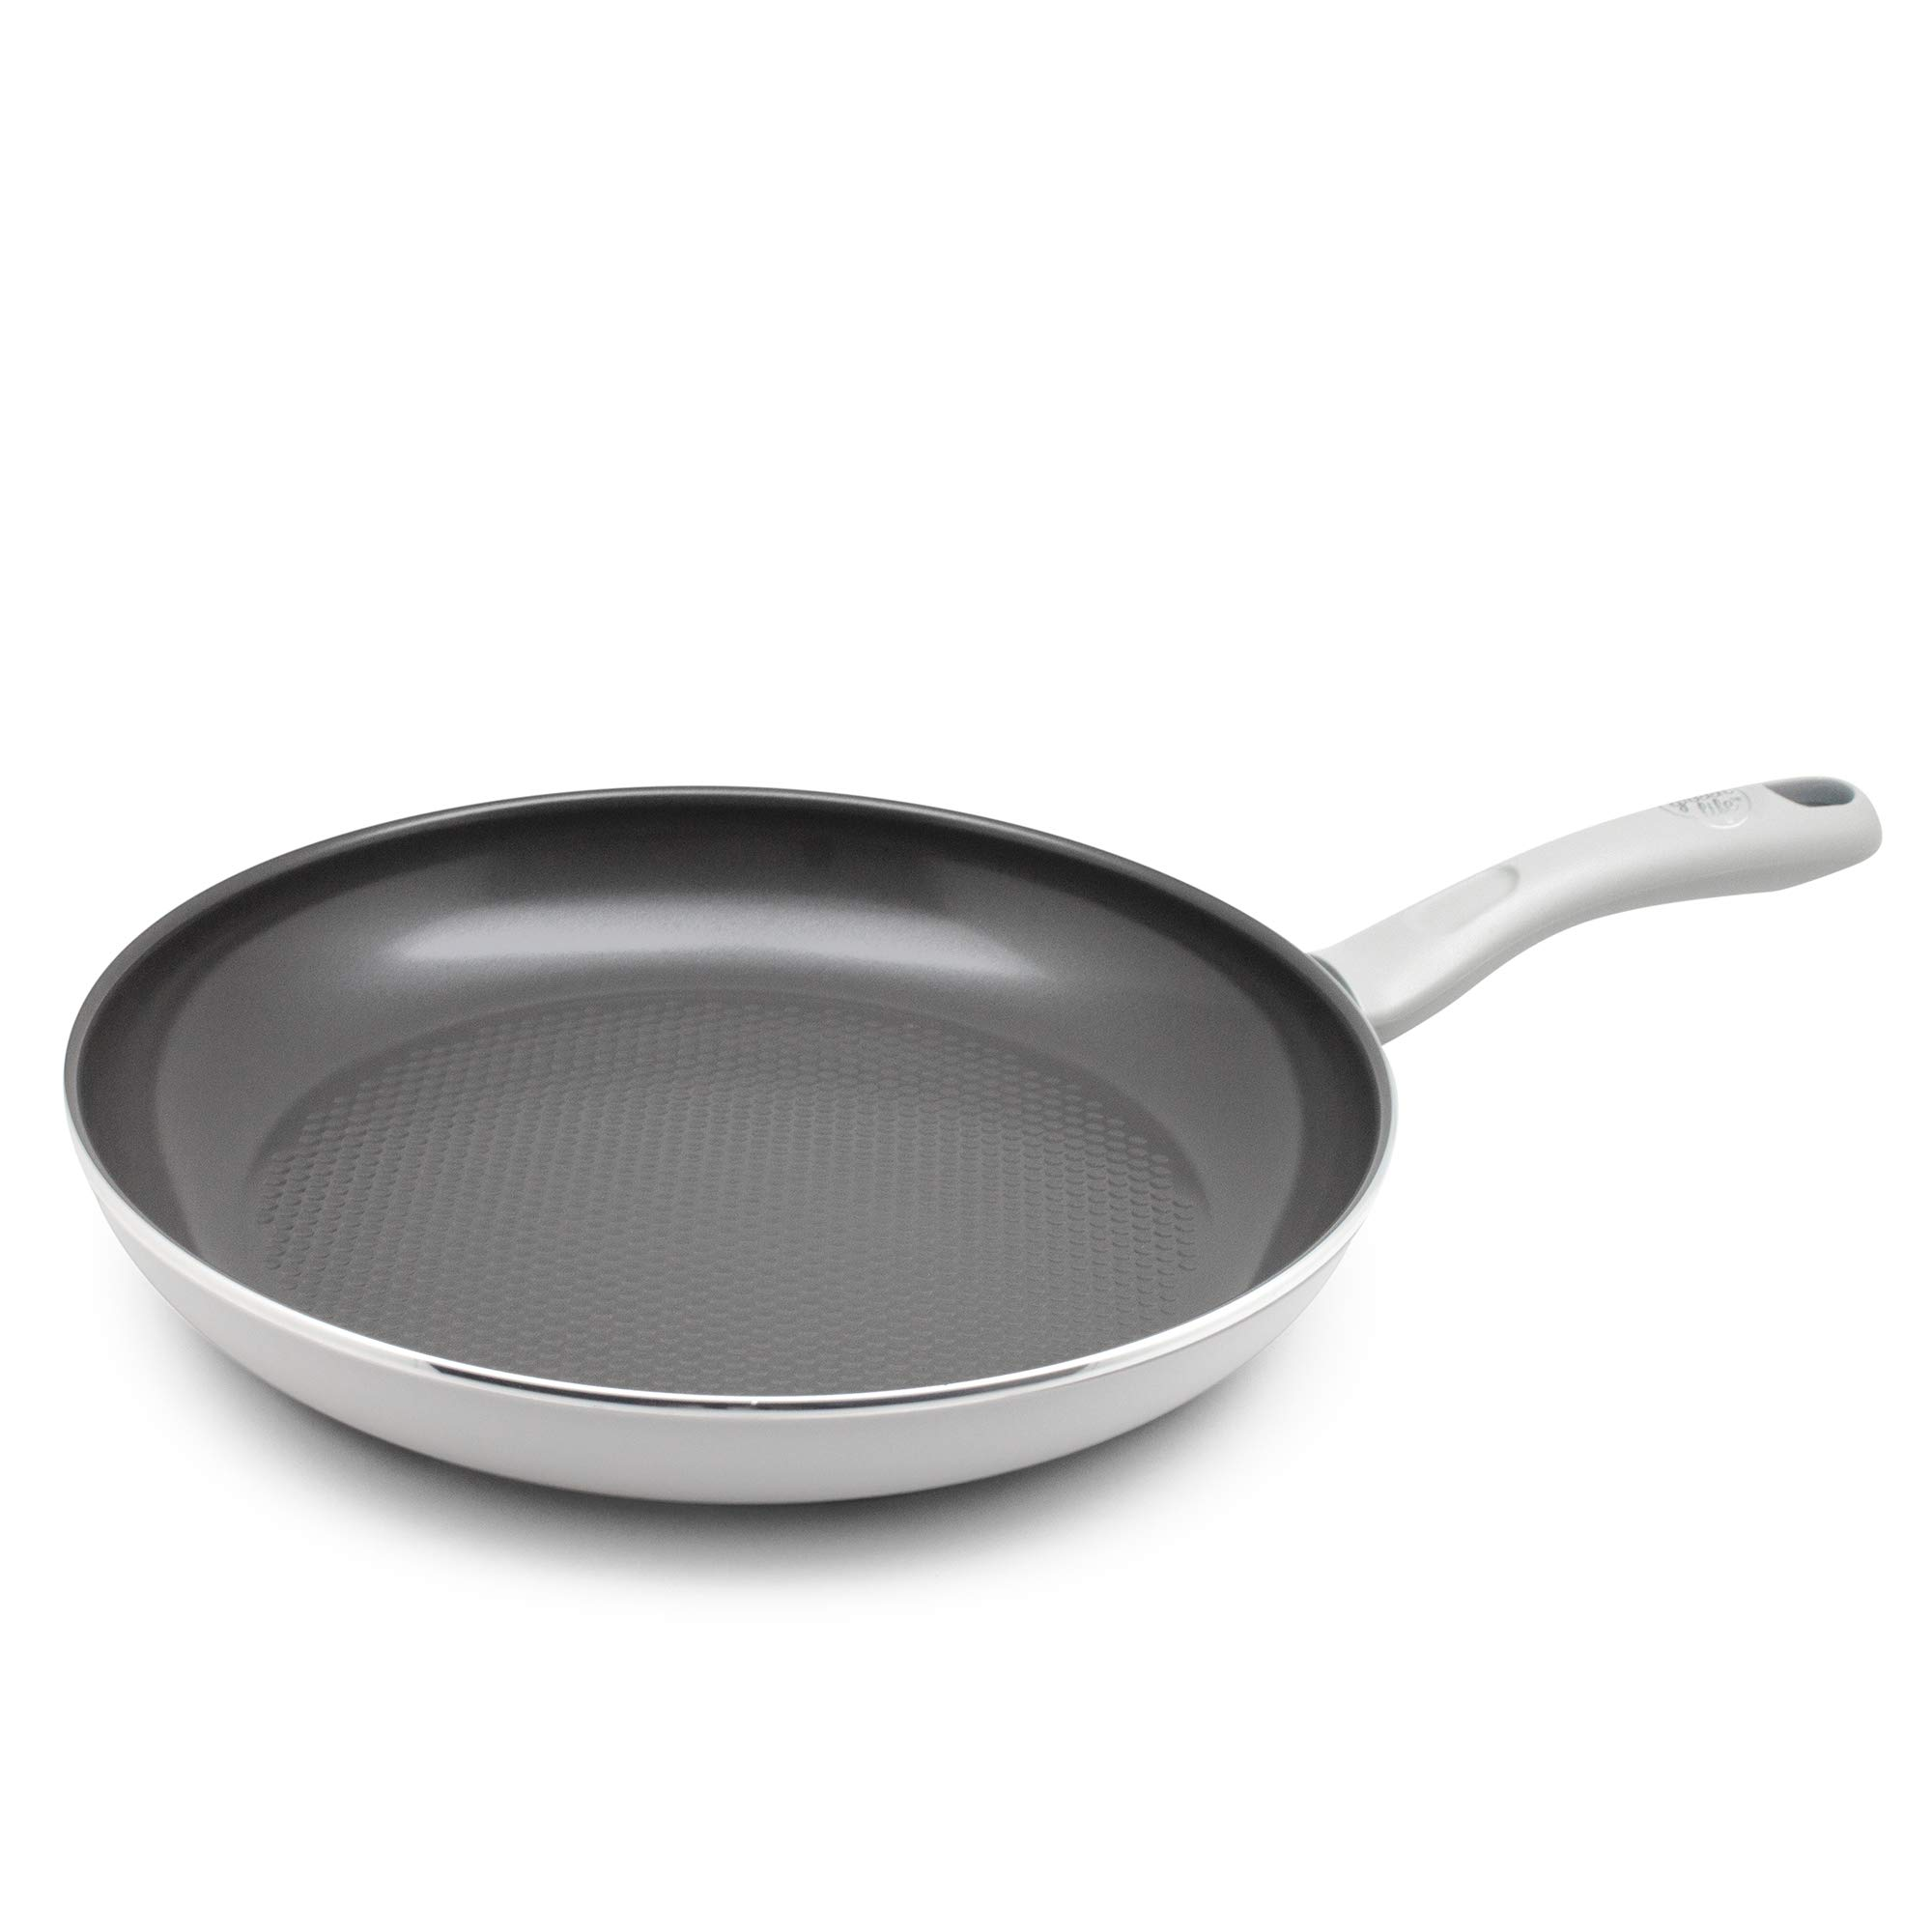 GreenLife CC001721-001 Lift Healthy Ceramic Non-Stick Dishwasher and Oven Safe 12'' Open Frying Pan, Black